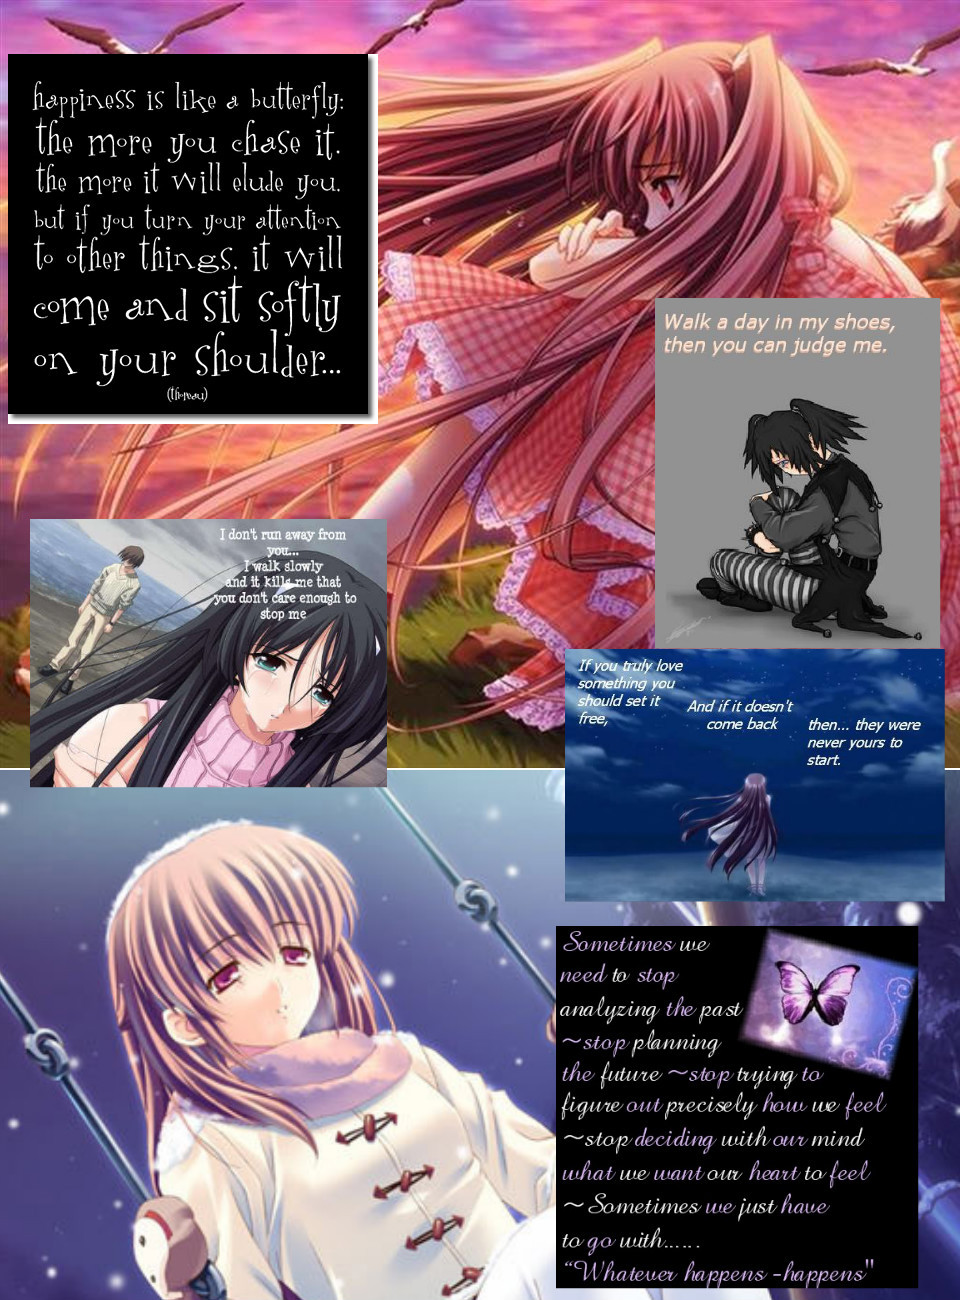 depressed anime girl with quotes quotesgram